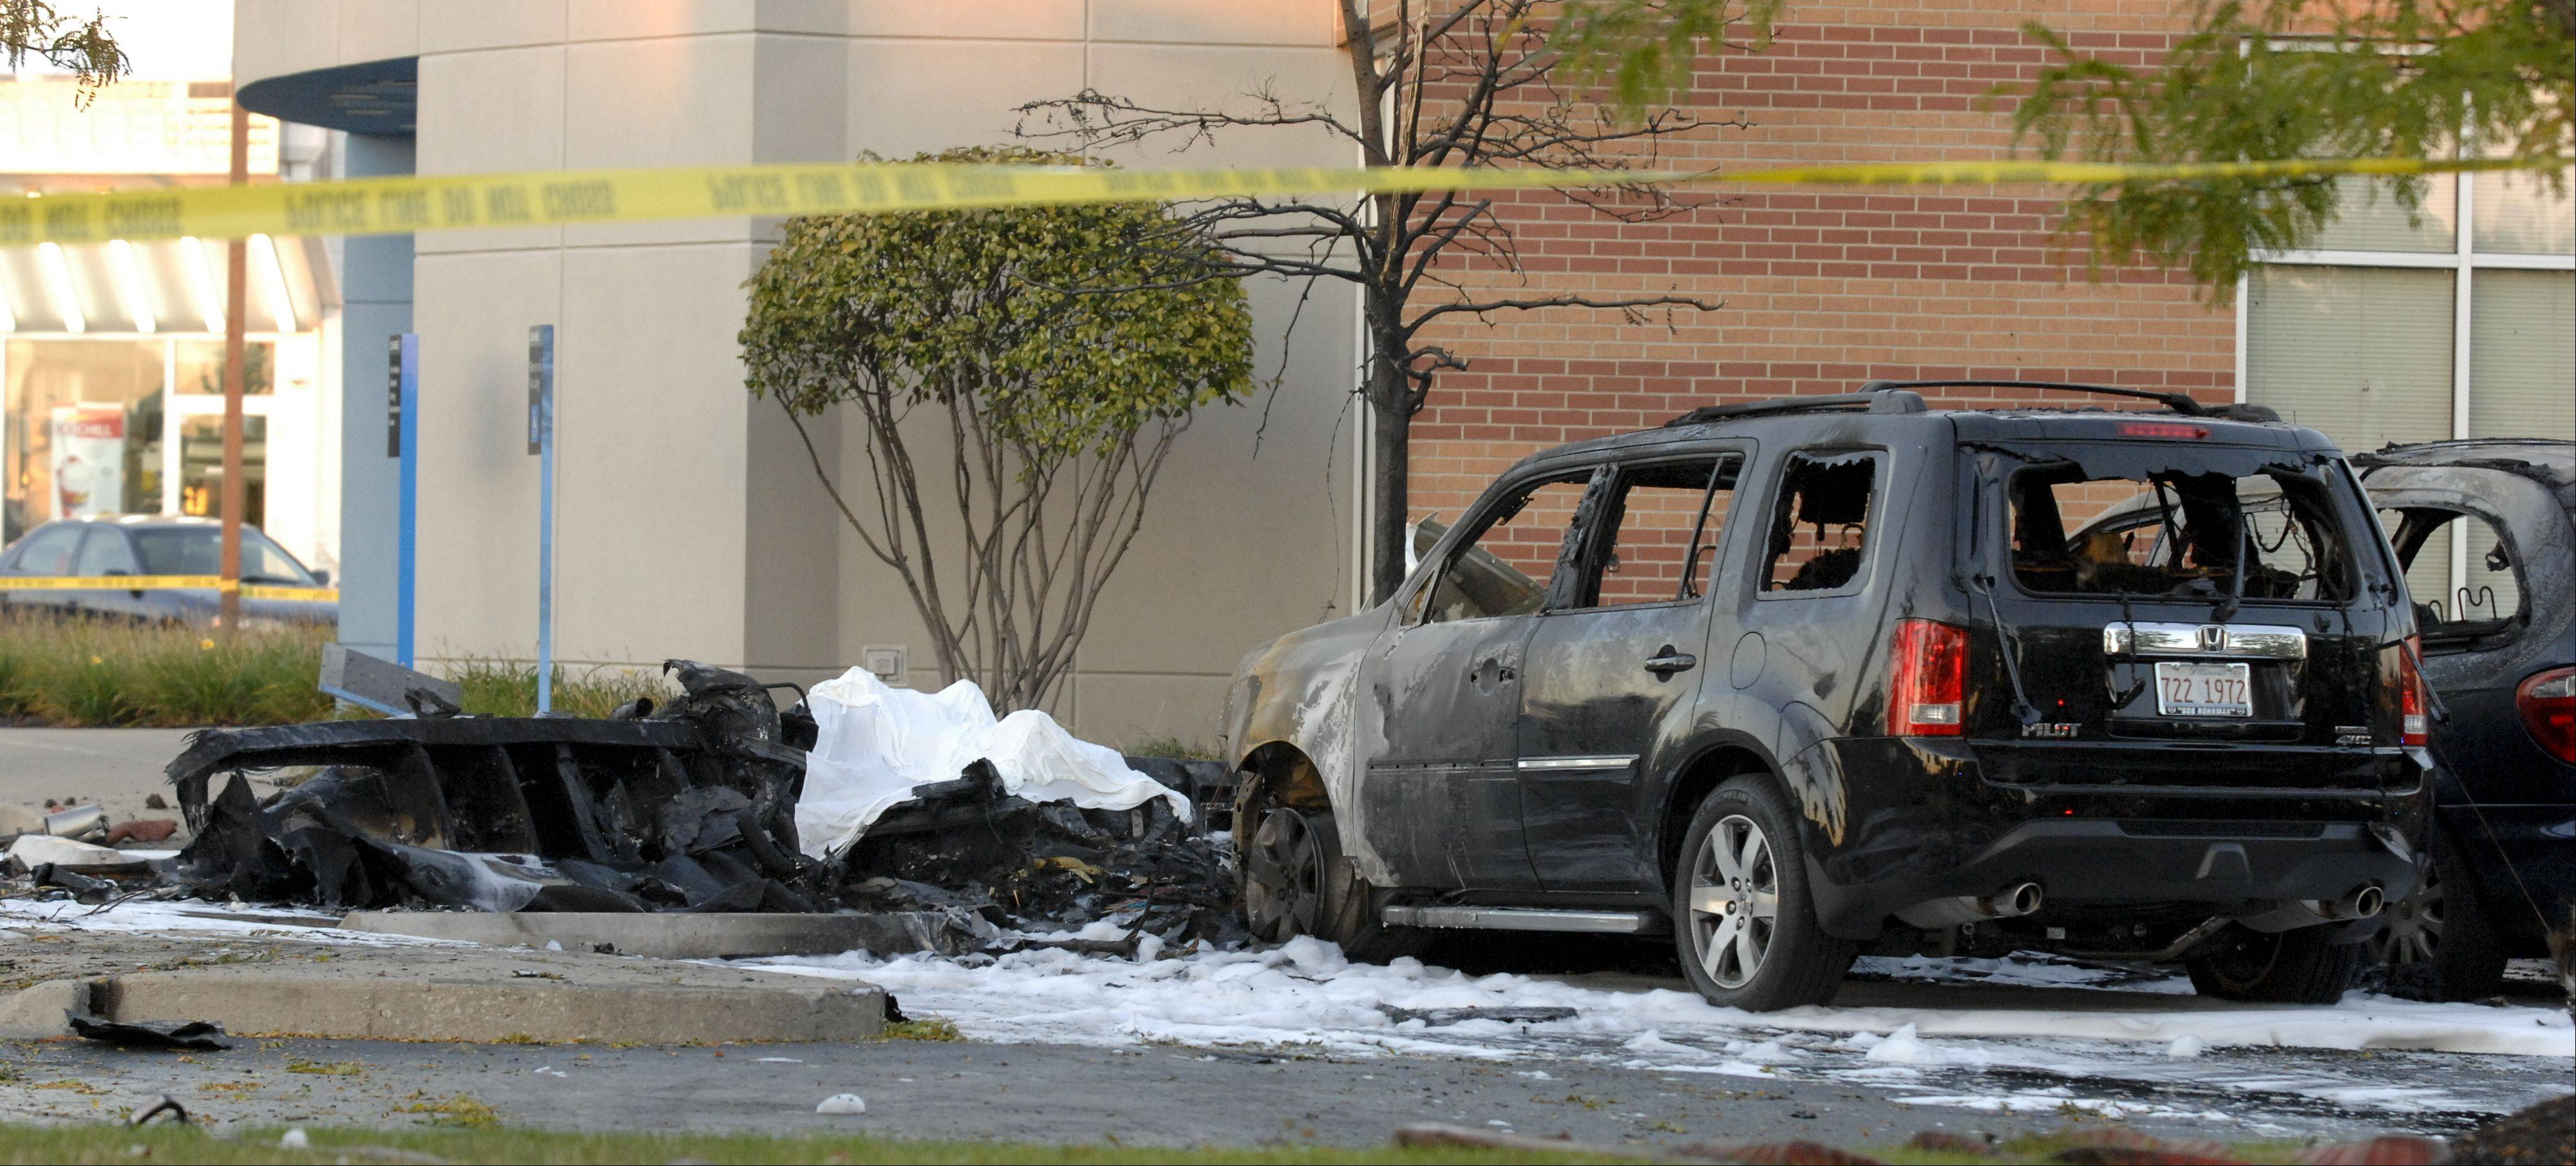 An investigation continues Friday into a plane crash Wednesday near a Chase bank in Bolingbrook that set nearby cars afire and killed two people.